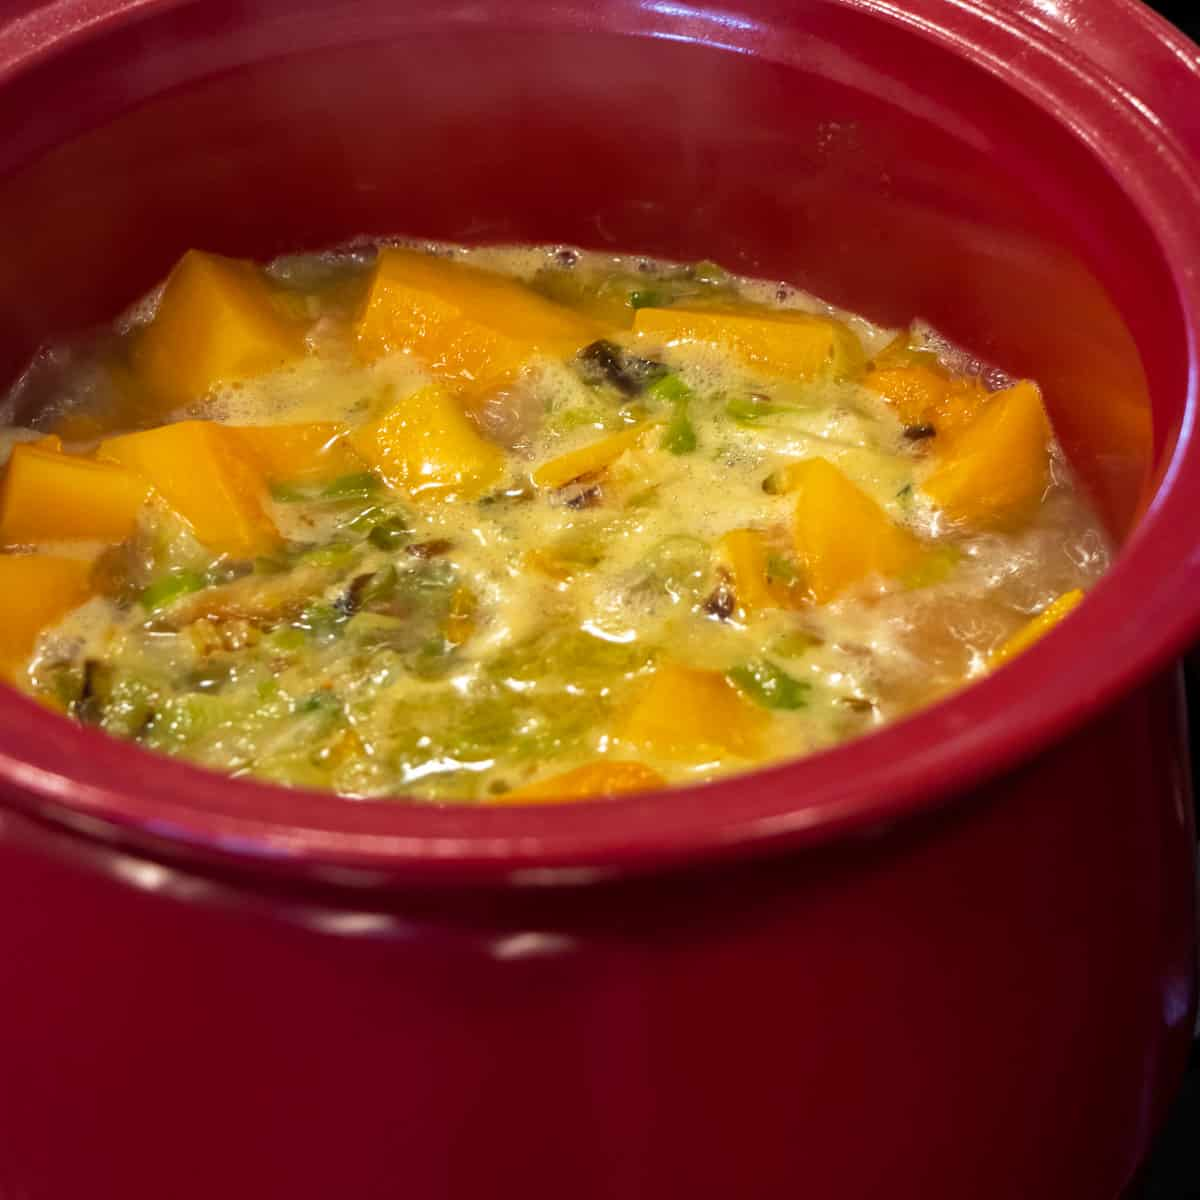 A pot with squash, leeks and onions simmering in a broth.